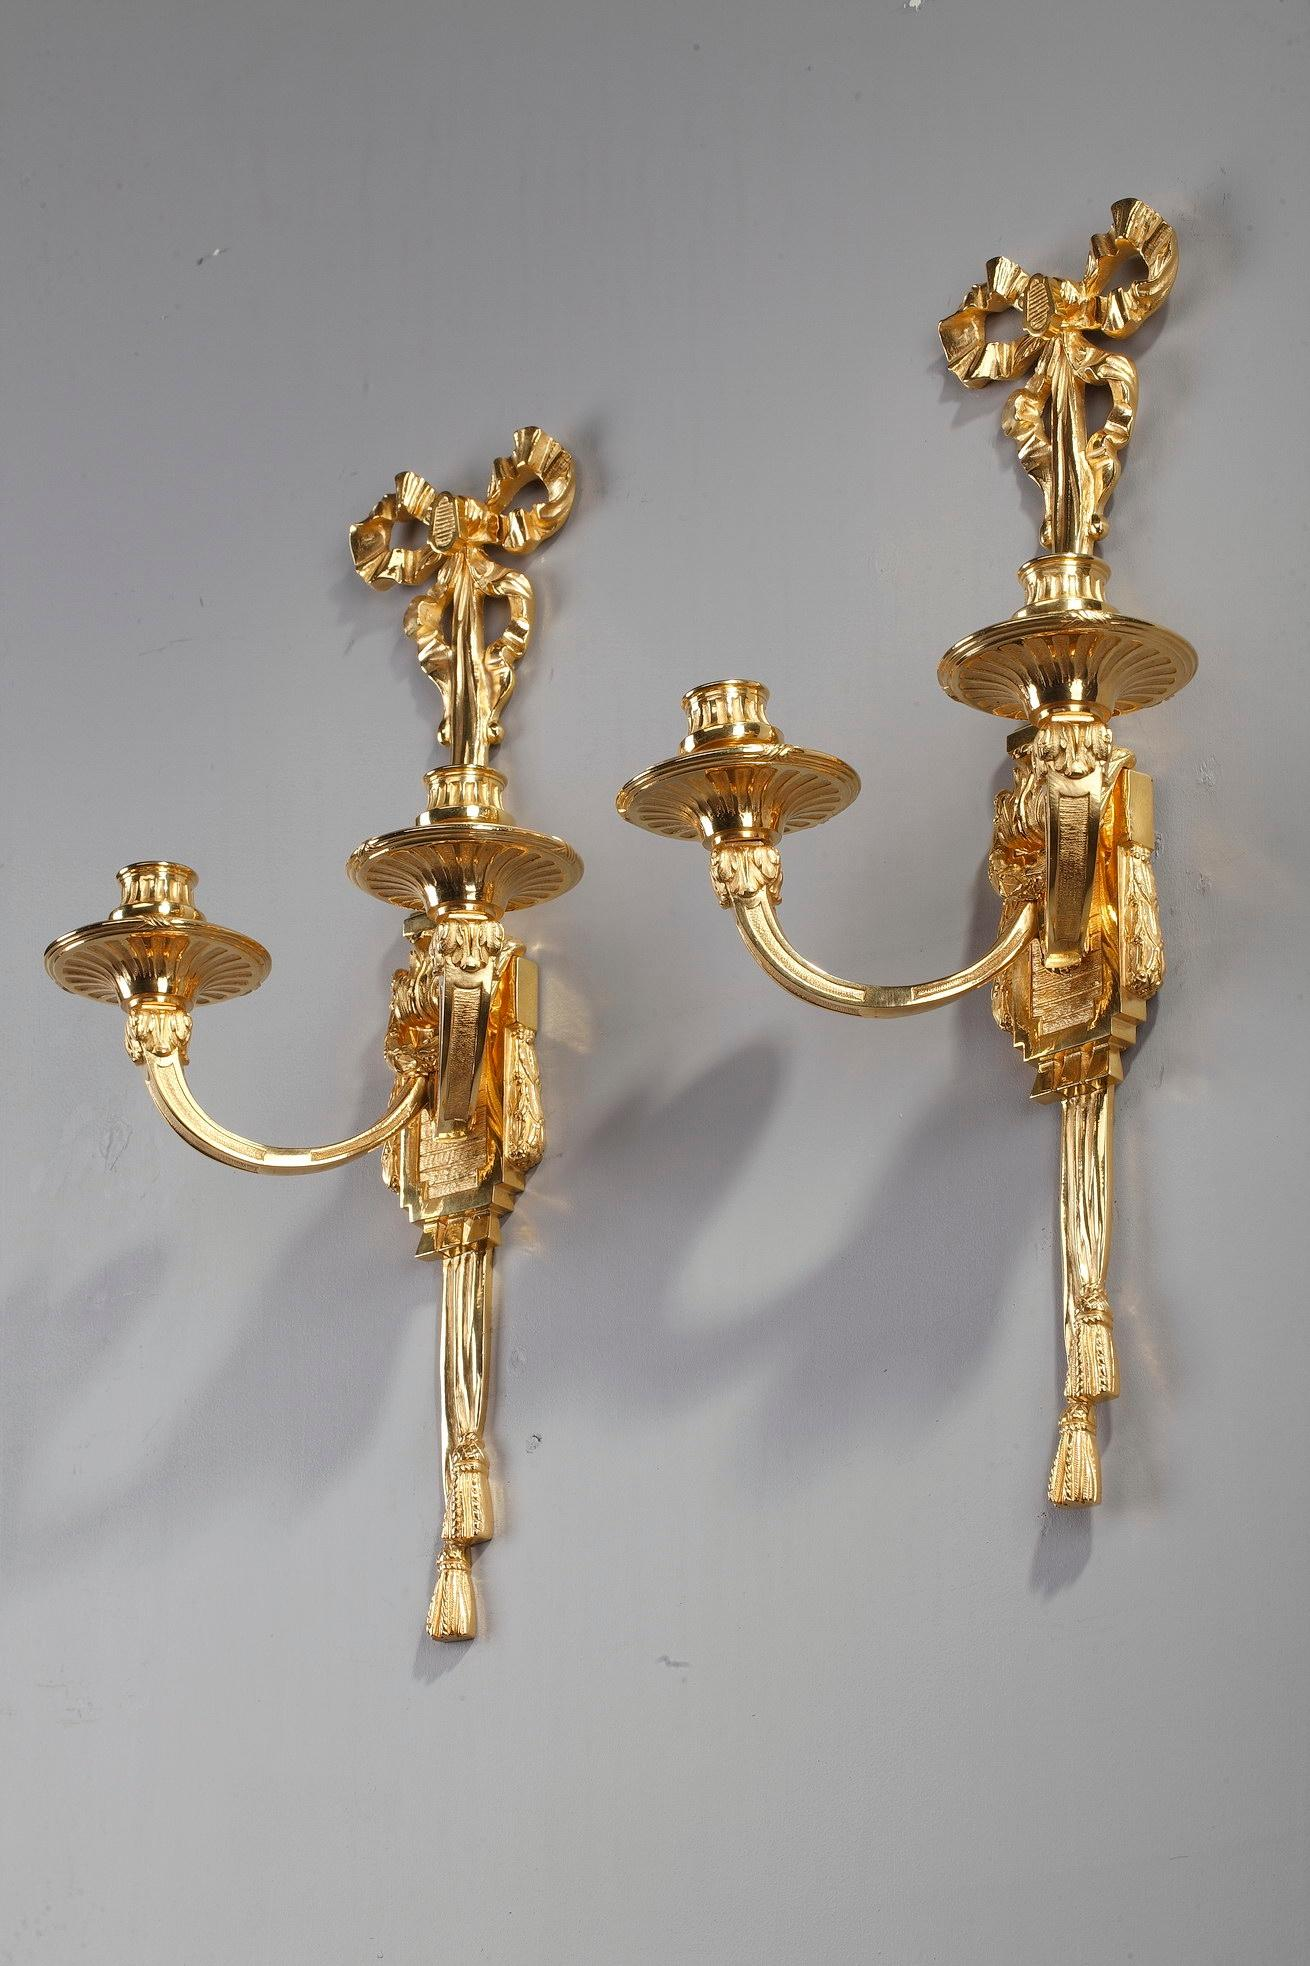 Late 19th Century Antique Candle Wall Sconces in Louis XVI ... on Antique Style Candle Holder Sconces id=63868